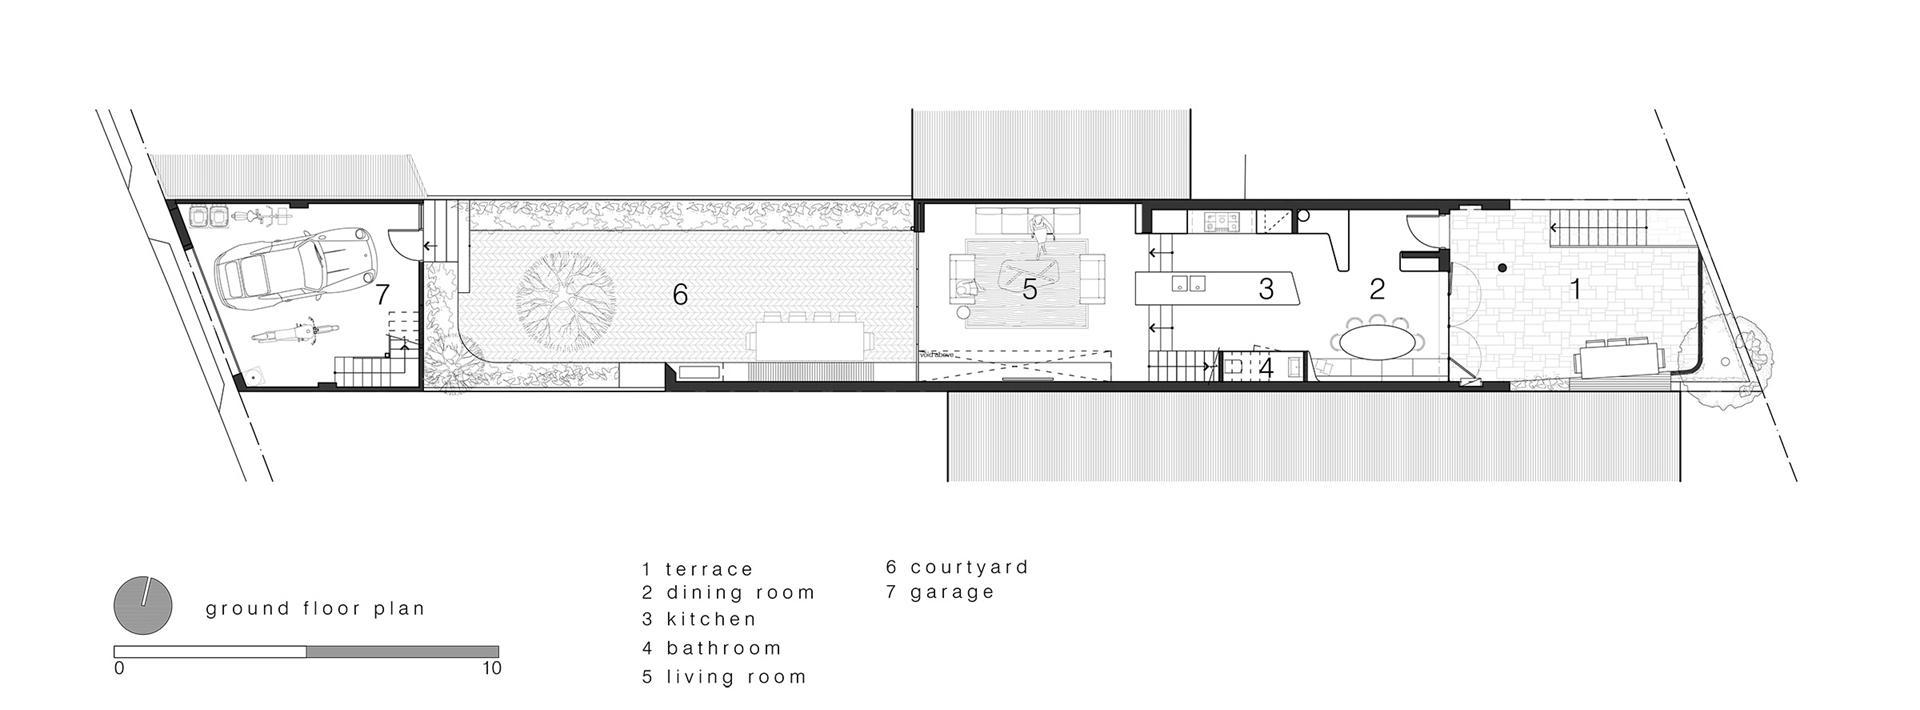 luigi rosselli architects   directors cut on architecture 3_Ground Floor Plan_96_DPI (Copy)